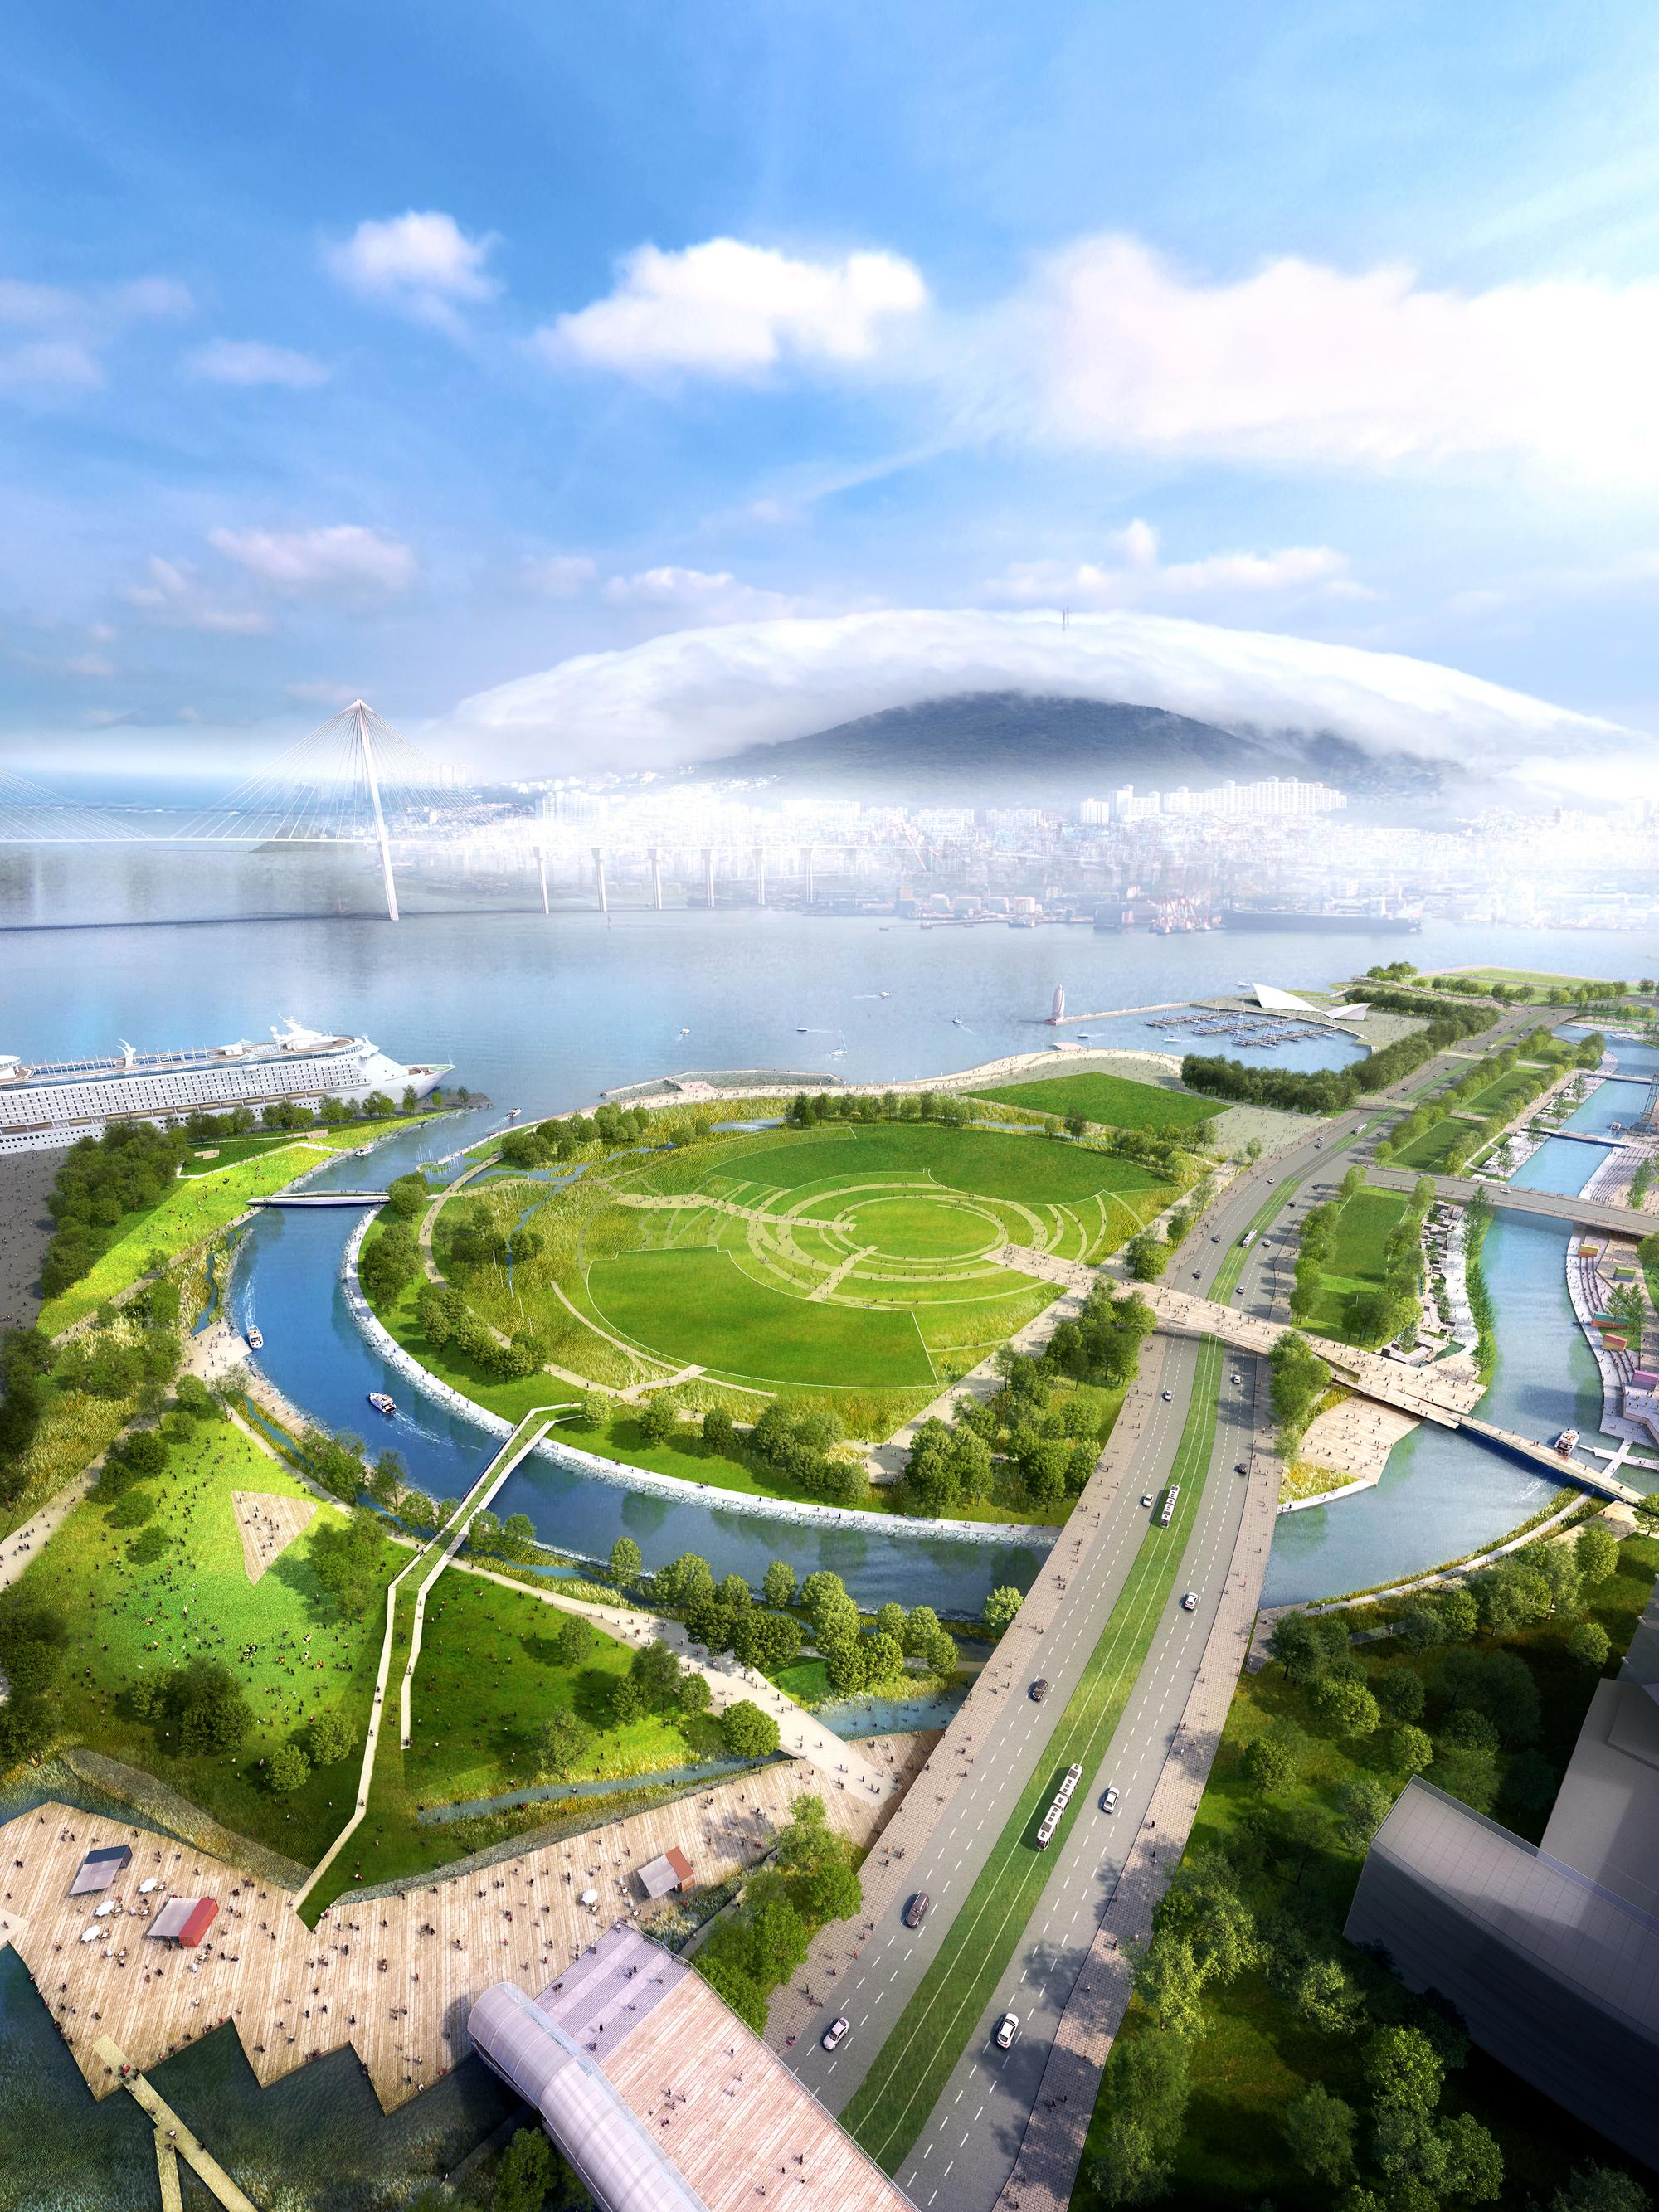 Interactive Pier, waterfront park development, waterfront park project, waterfront development projects, waterfront development example, water front design, waterfront development,